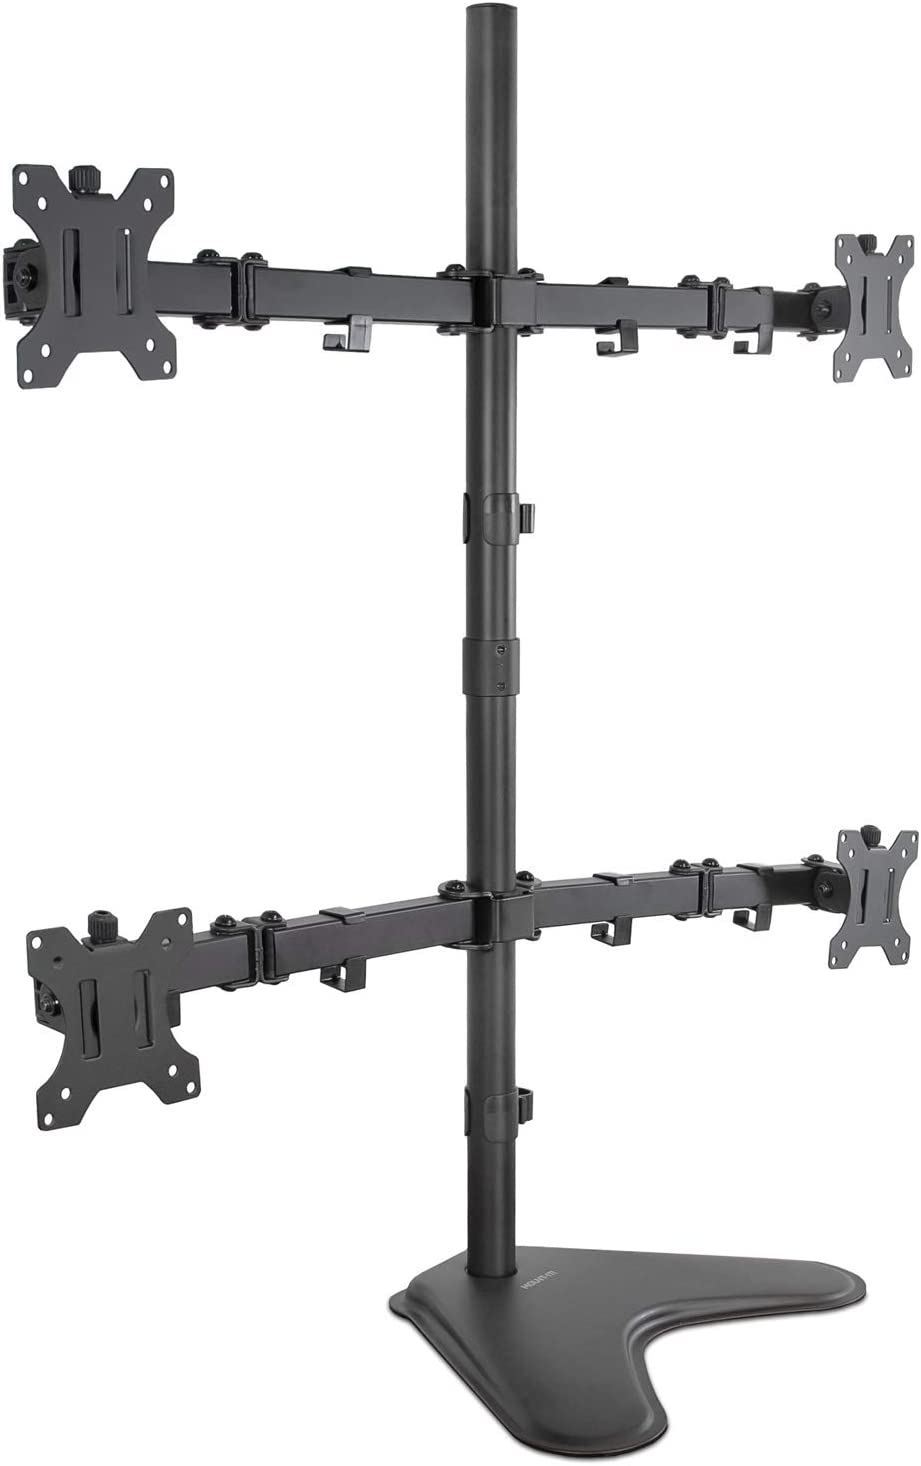 Mount-It! Quad Monitor Stand | Height Adjustable Free Standing 4 Screen Mount | Fits Monitors up to 32 Inches | Black, Steel | MI-2784